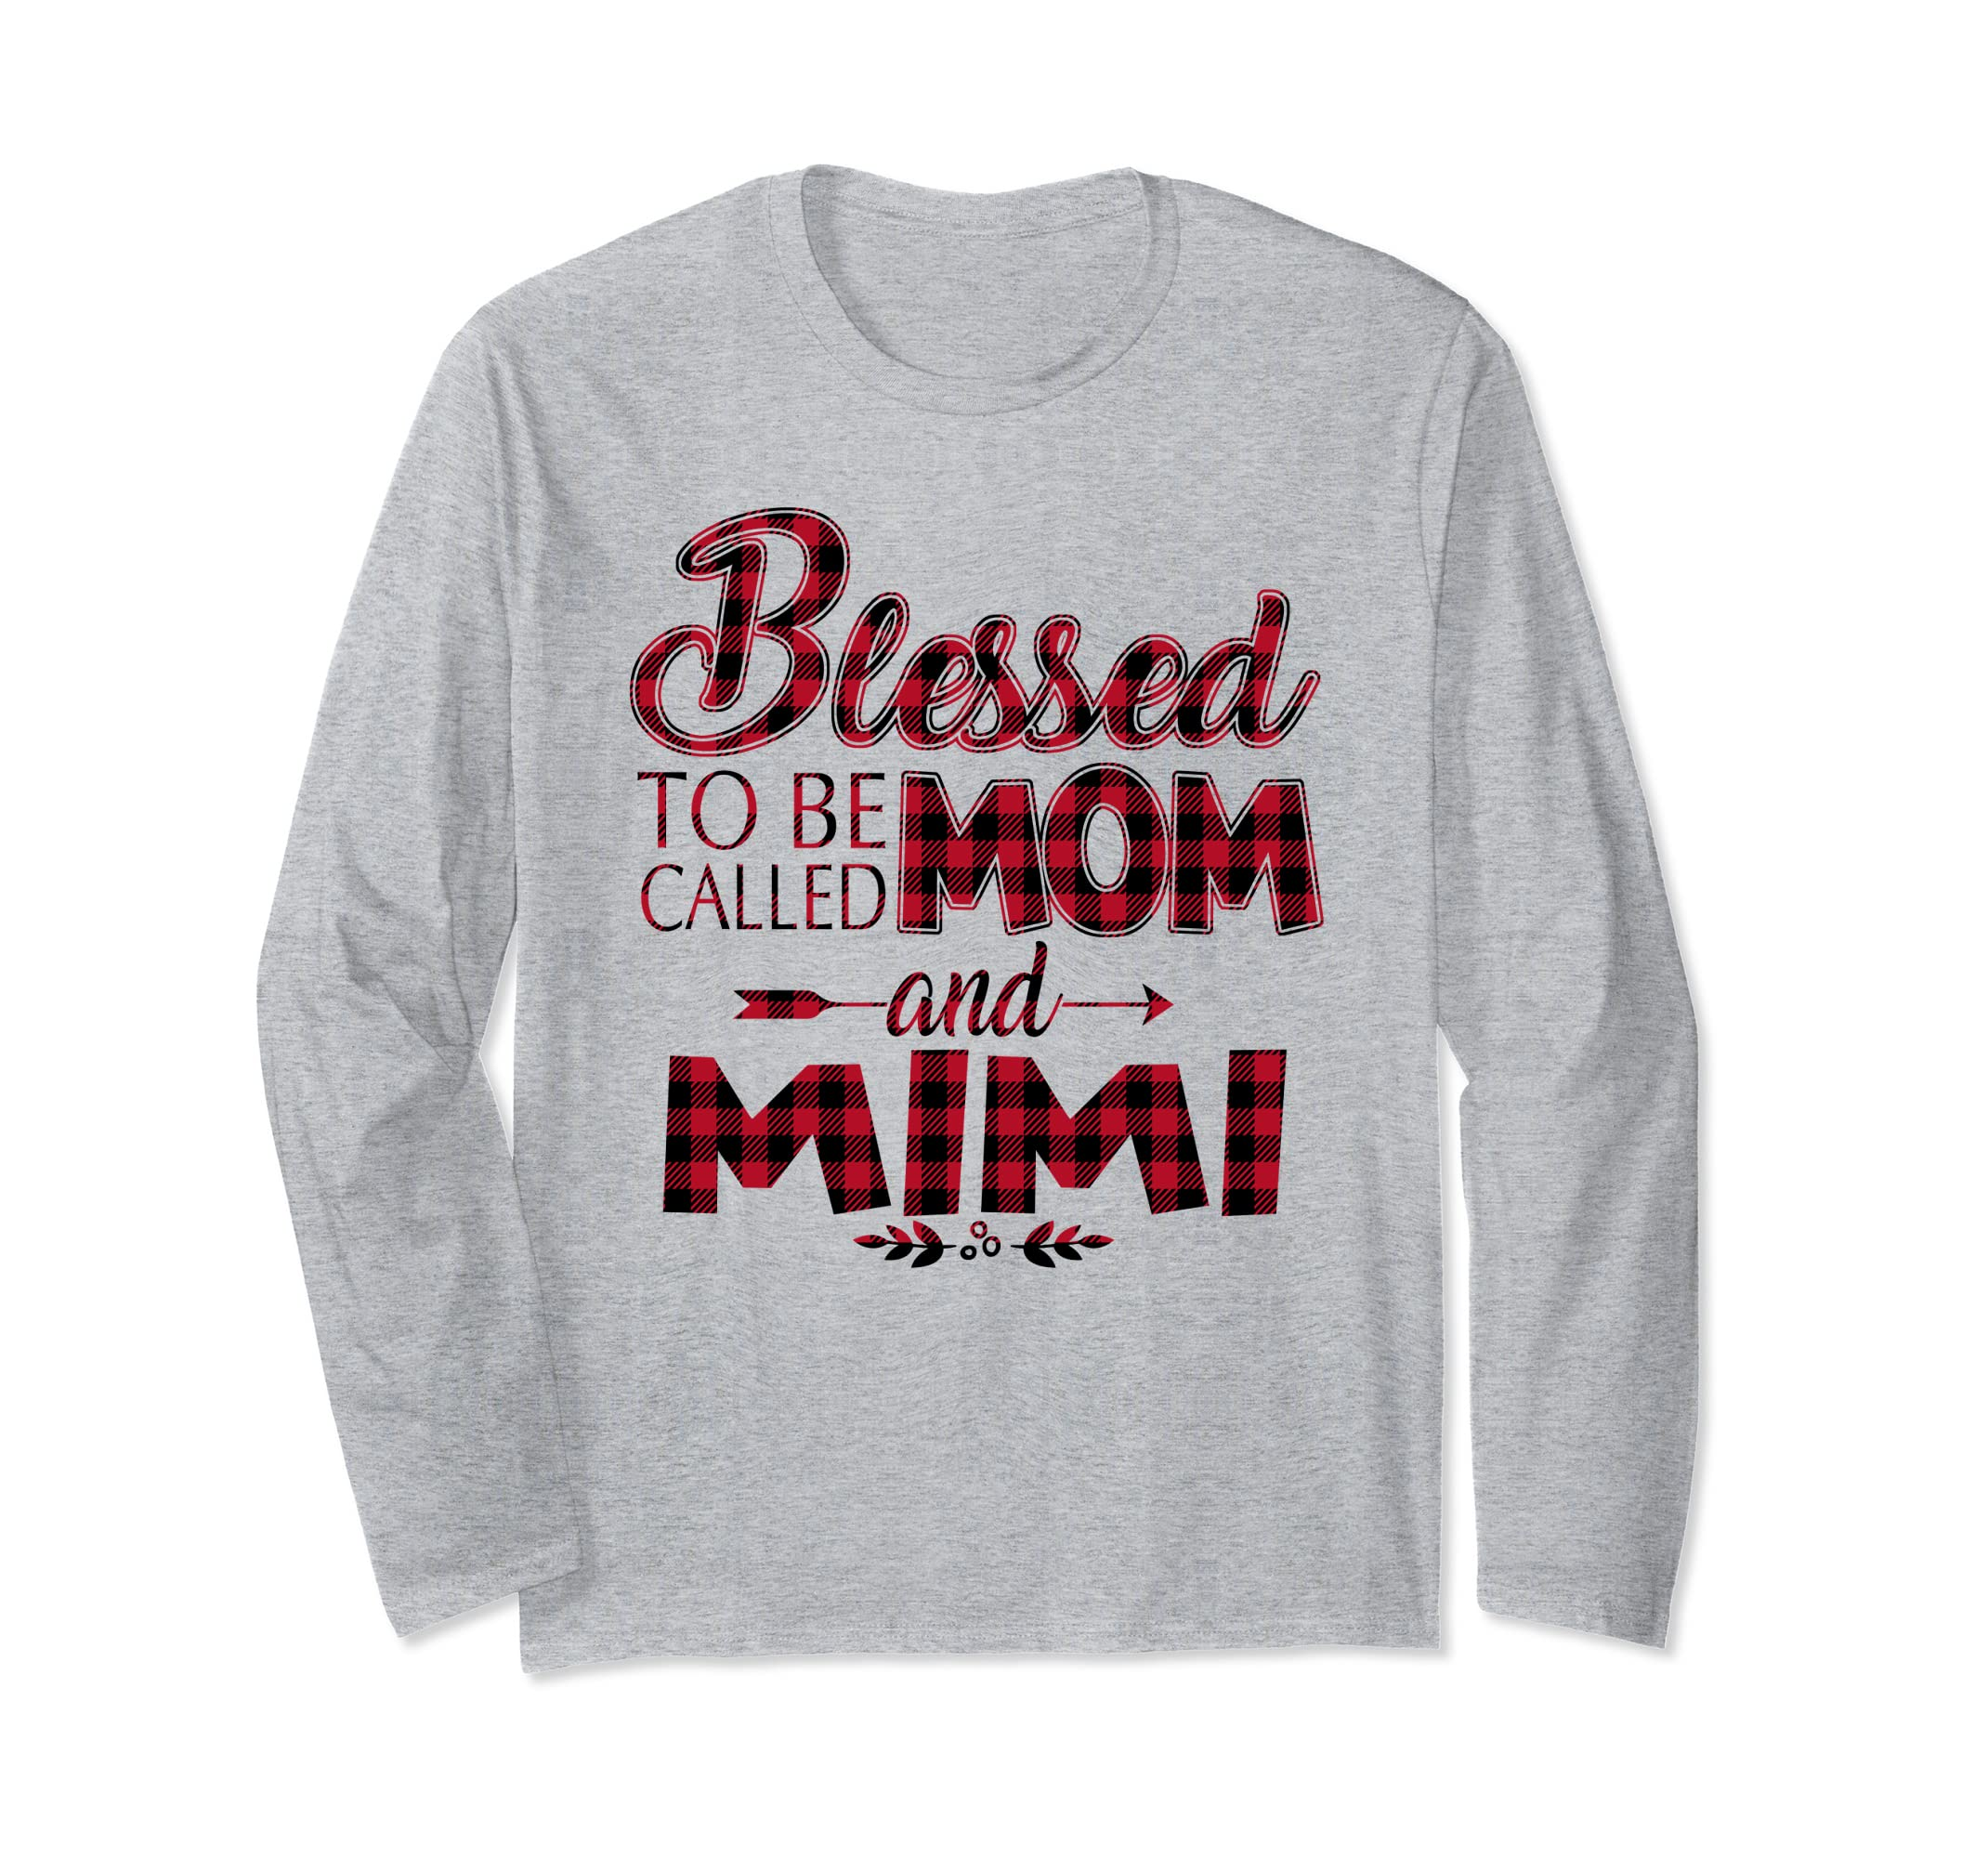 704866c7 Amazon.com: Blessed To Be Called Mom and Mimi Caro - LongsleeveT: Clothing